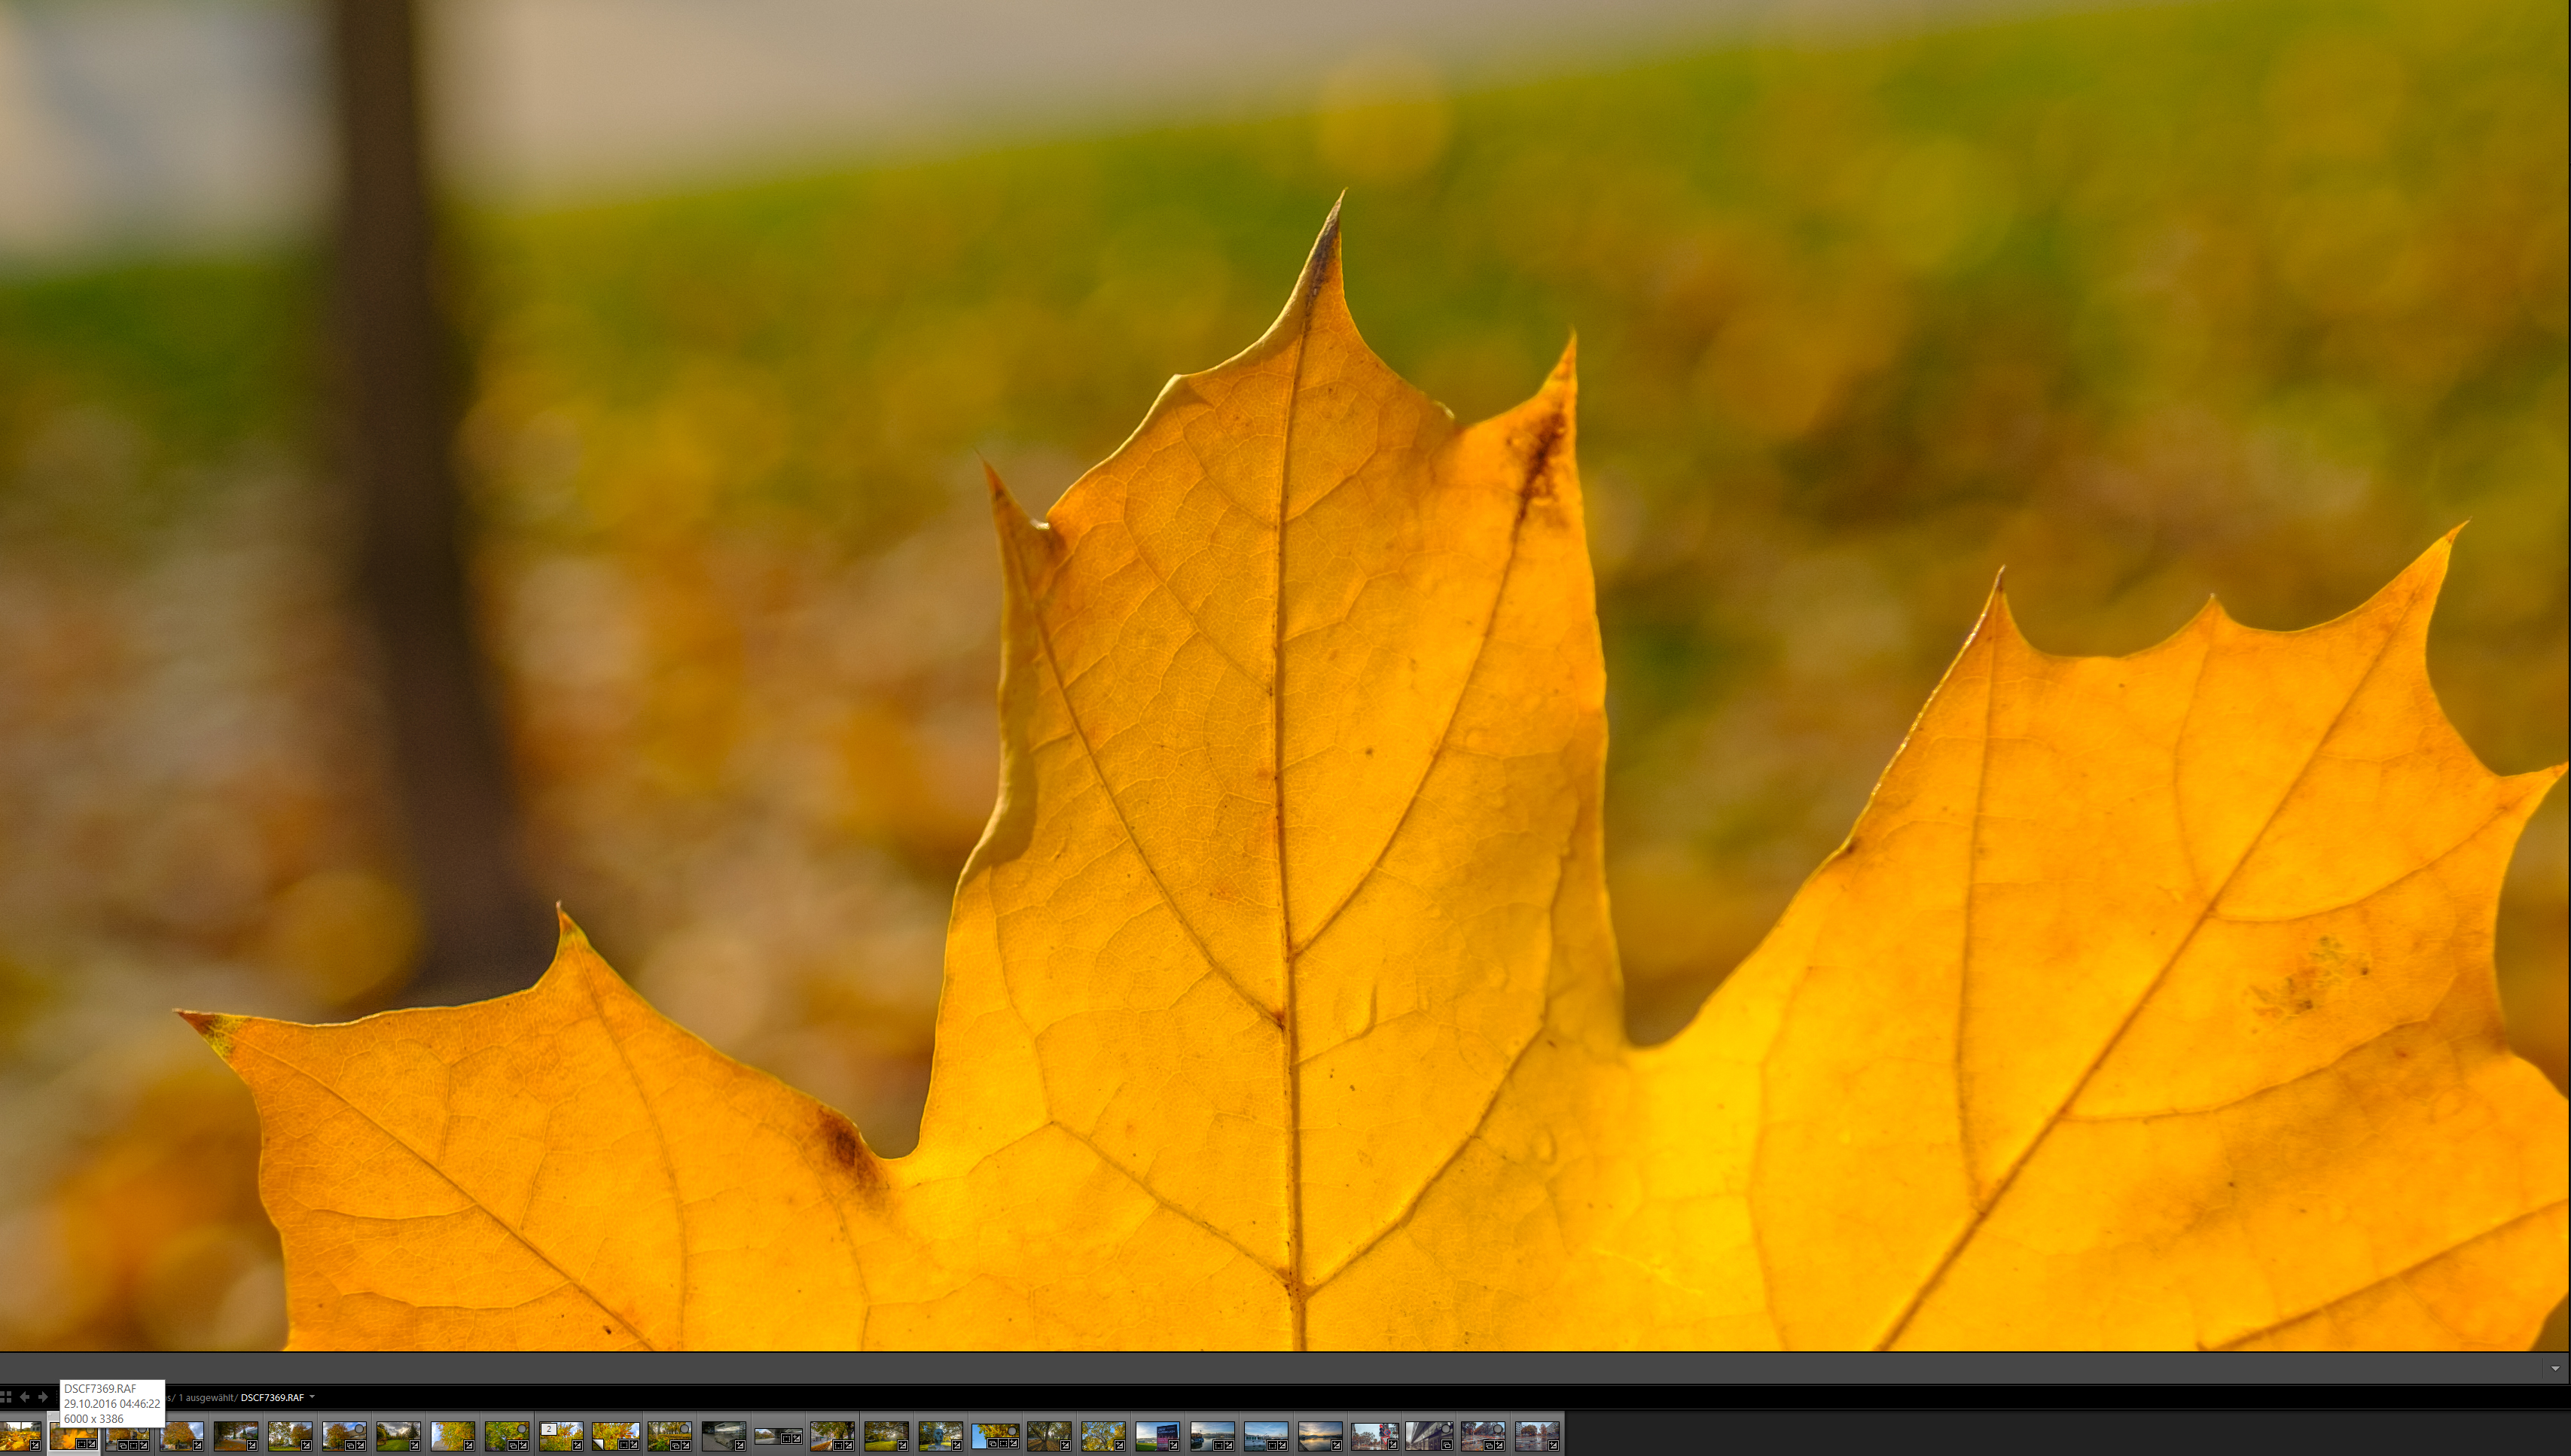 lightroom detail